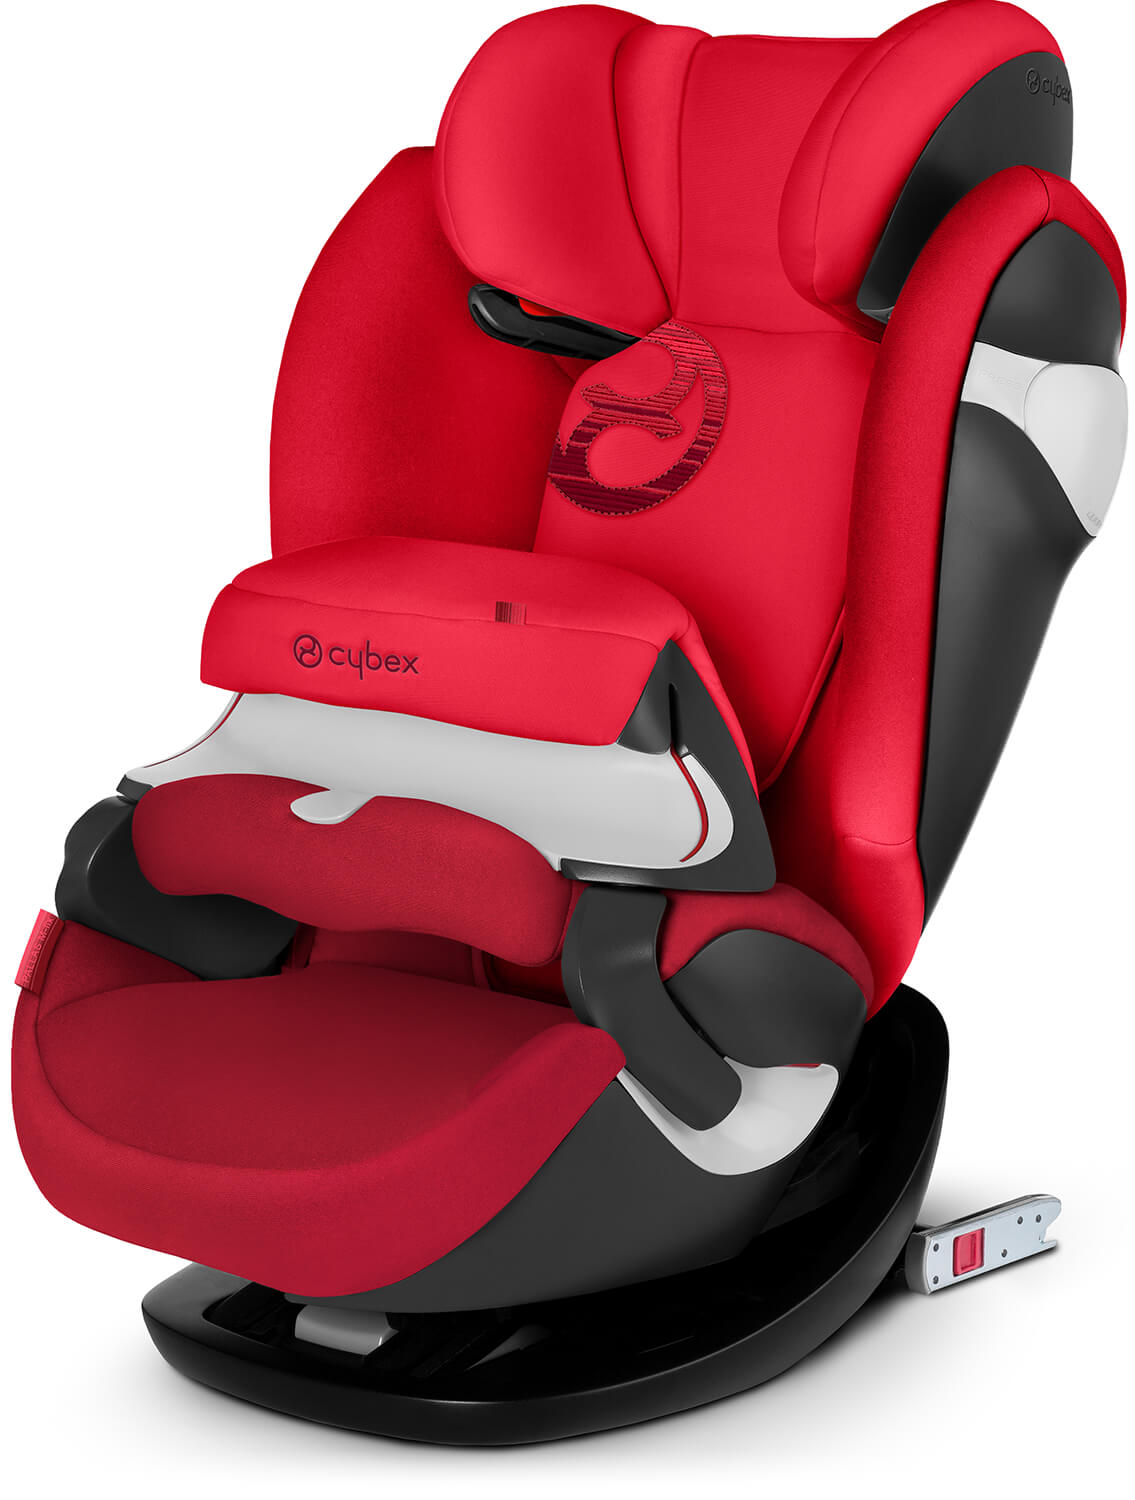 cybex pallas m fix rebel red 2018 child car seat. Black Bedroom Furniture Sets. Home Design Ideas